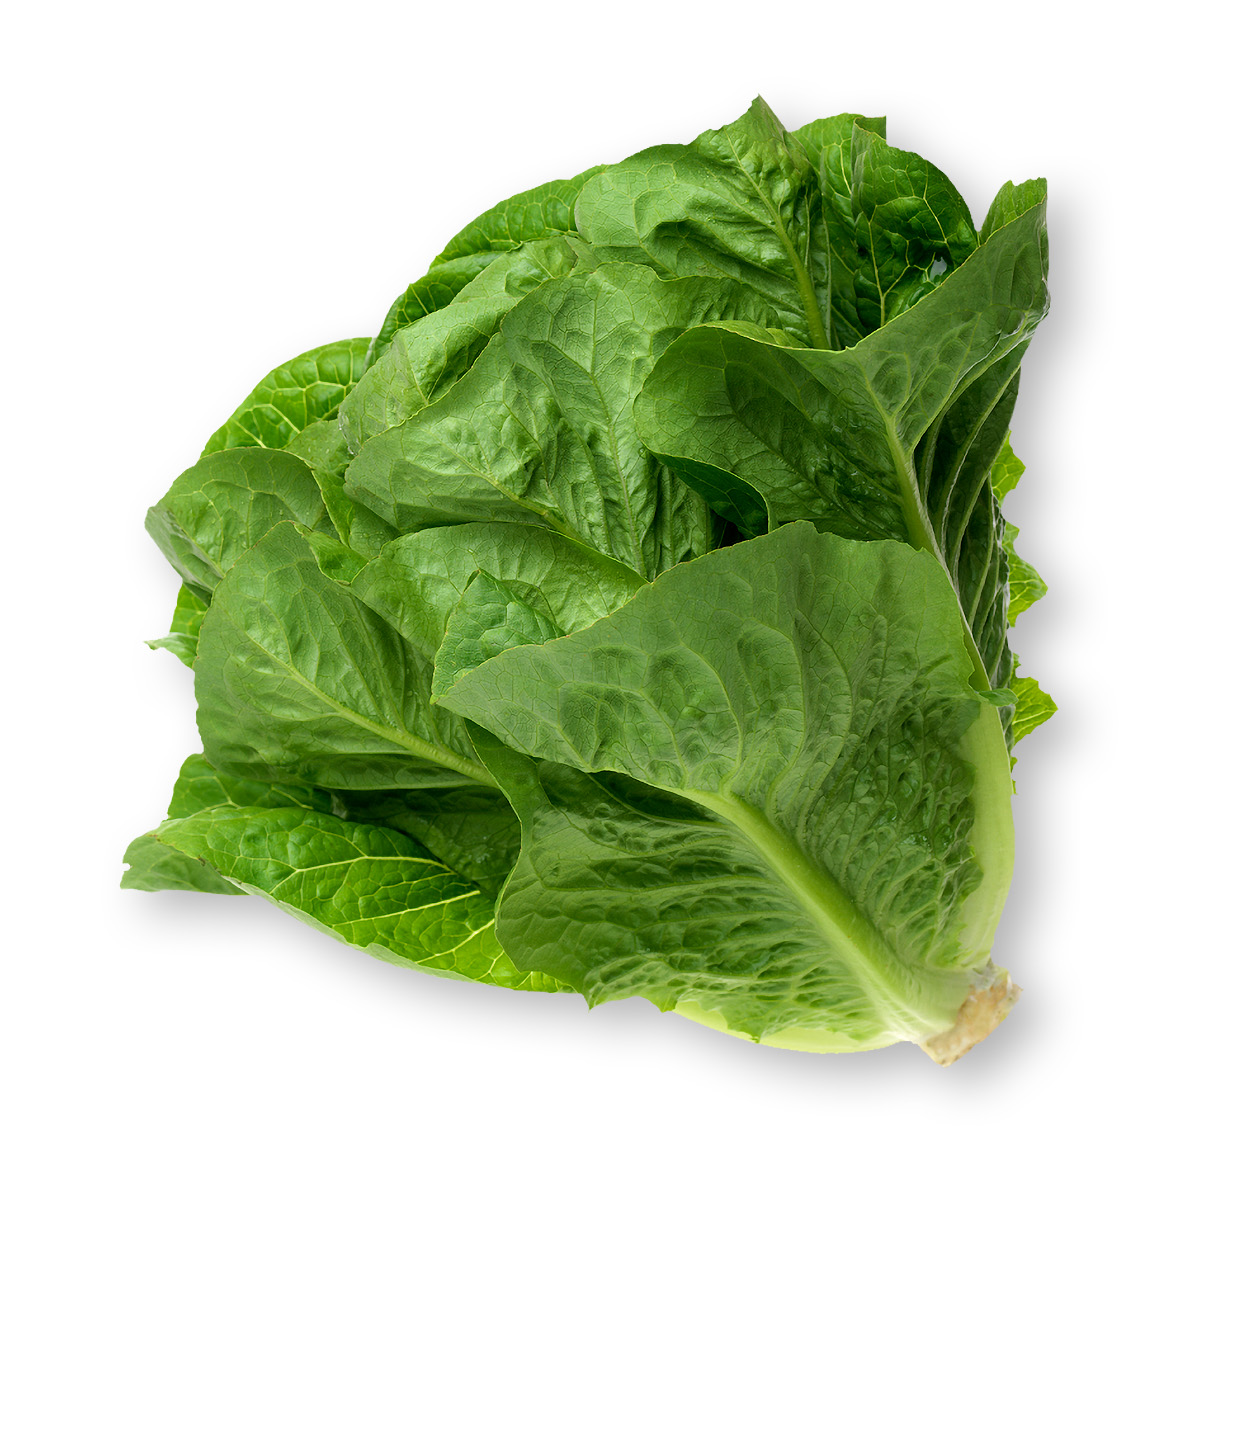 picture of a Romaine lettuce head